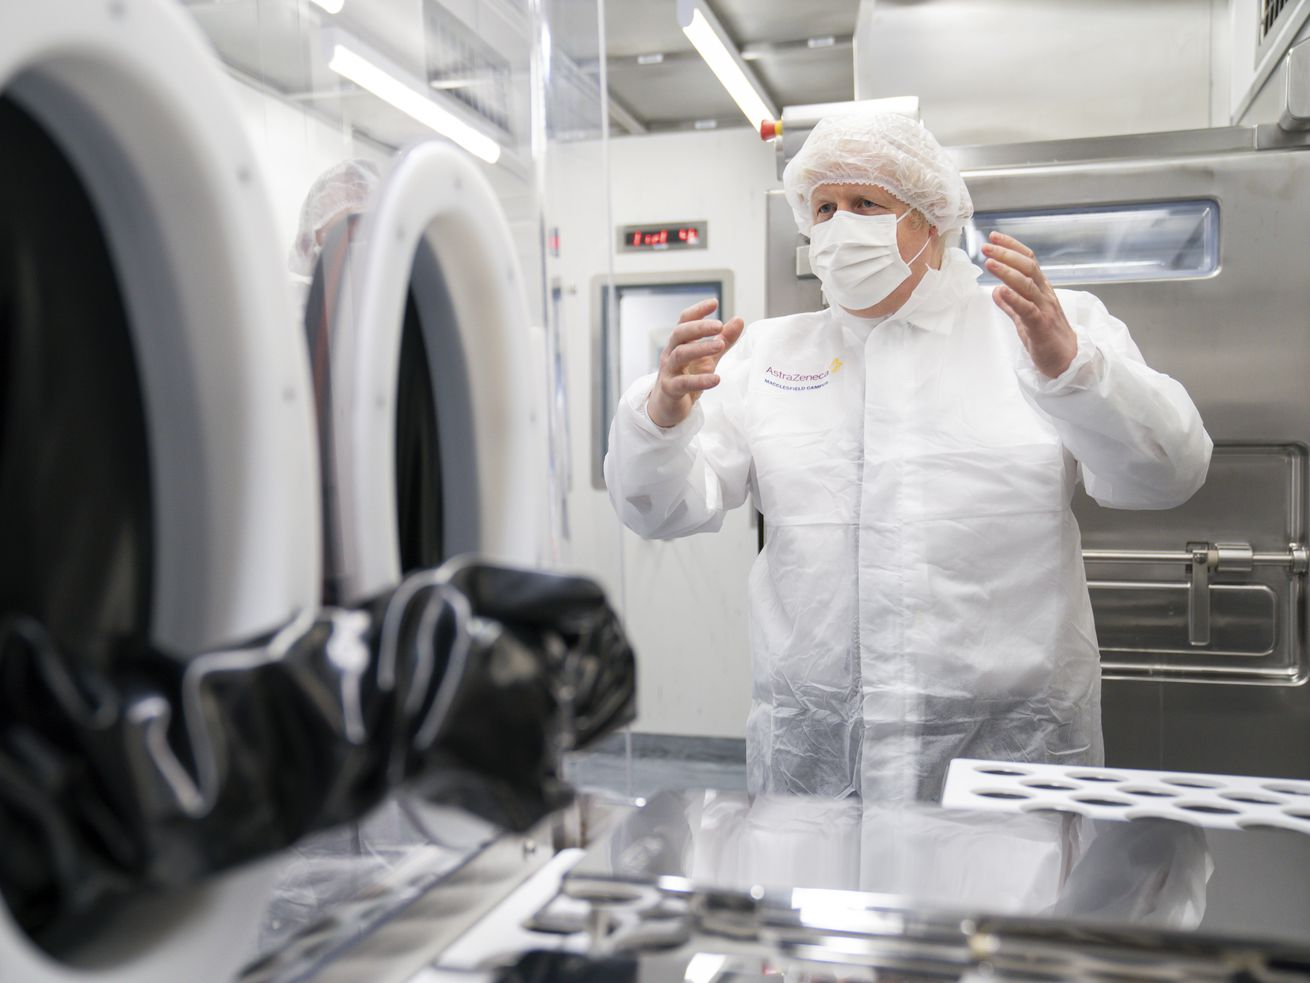 Britain's Prime Minister Boris Johnson visits AstraZeneca facility in Macclesfield, England, on Tuesday April 6, 2021, to learn more about their dollars 500 million investment into the site.